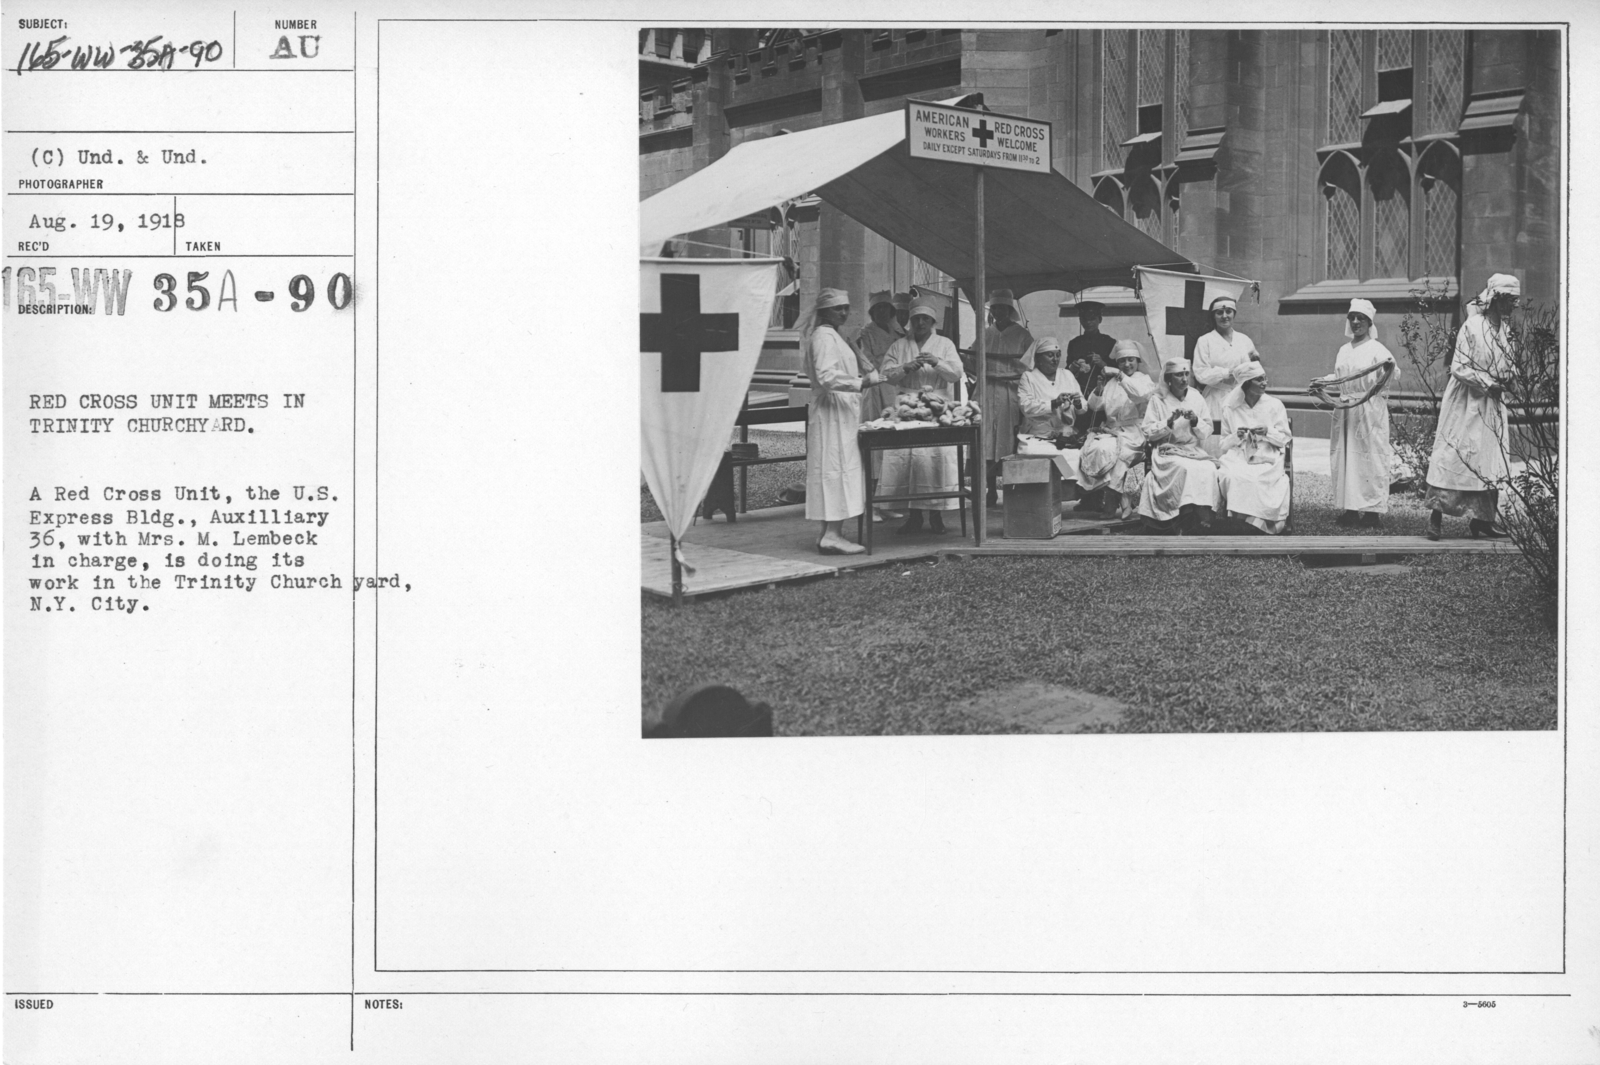 American Red Cross - Classes in Red Cross Work - Red Cross Unit meets in Trinity Churchyard. Red cross Unit, the U.S. Express Bldg., Auxiliary 36, with Mrs. M. Lembeck in charge, is doing its work in the Trinity Church yard, N.Y. City